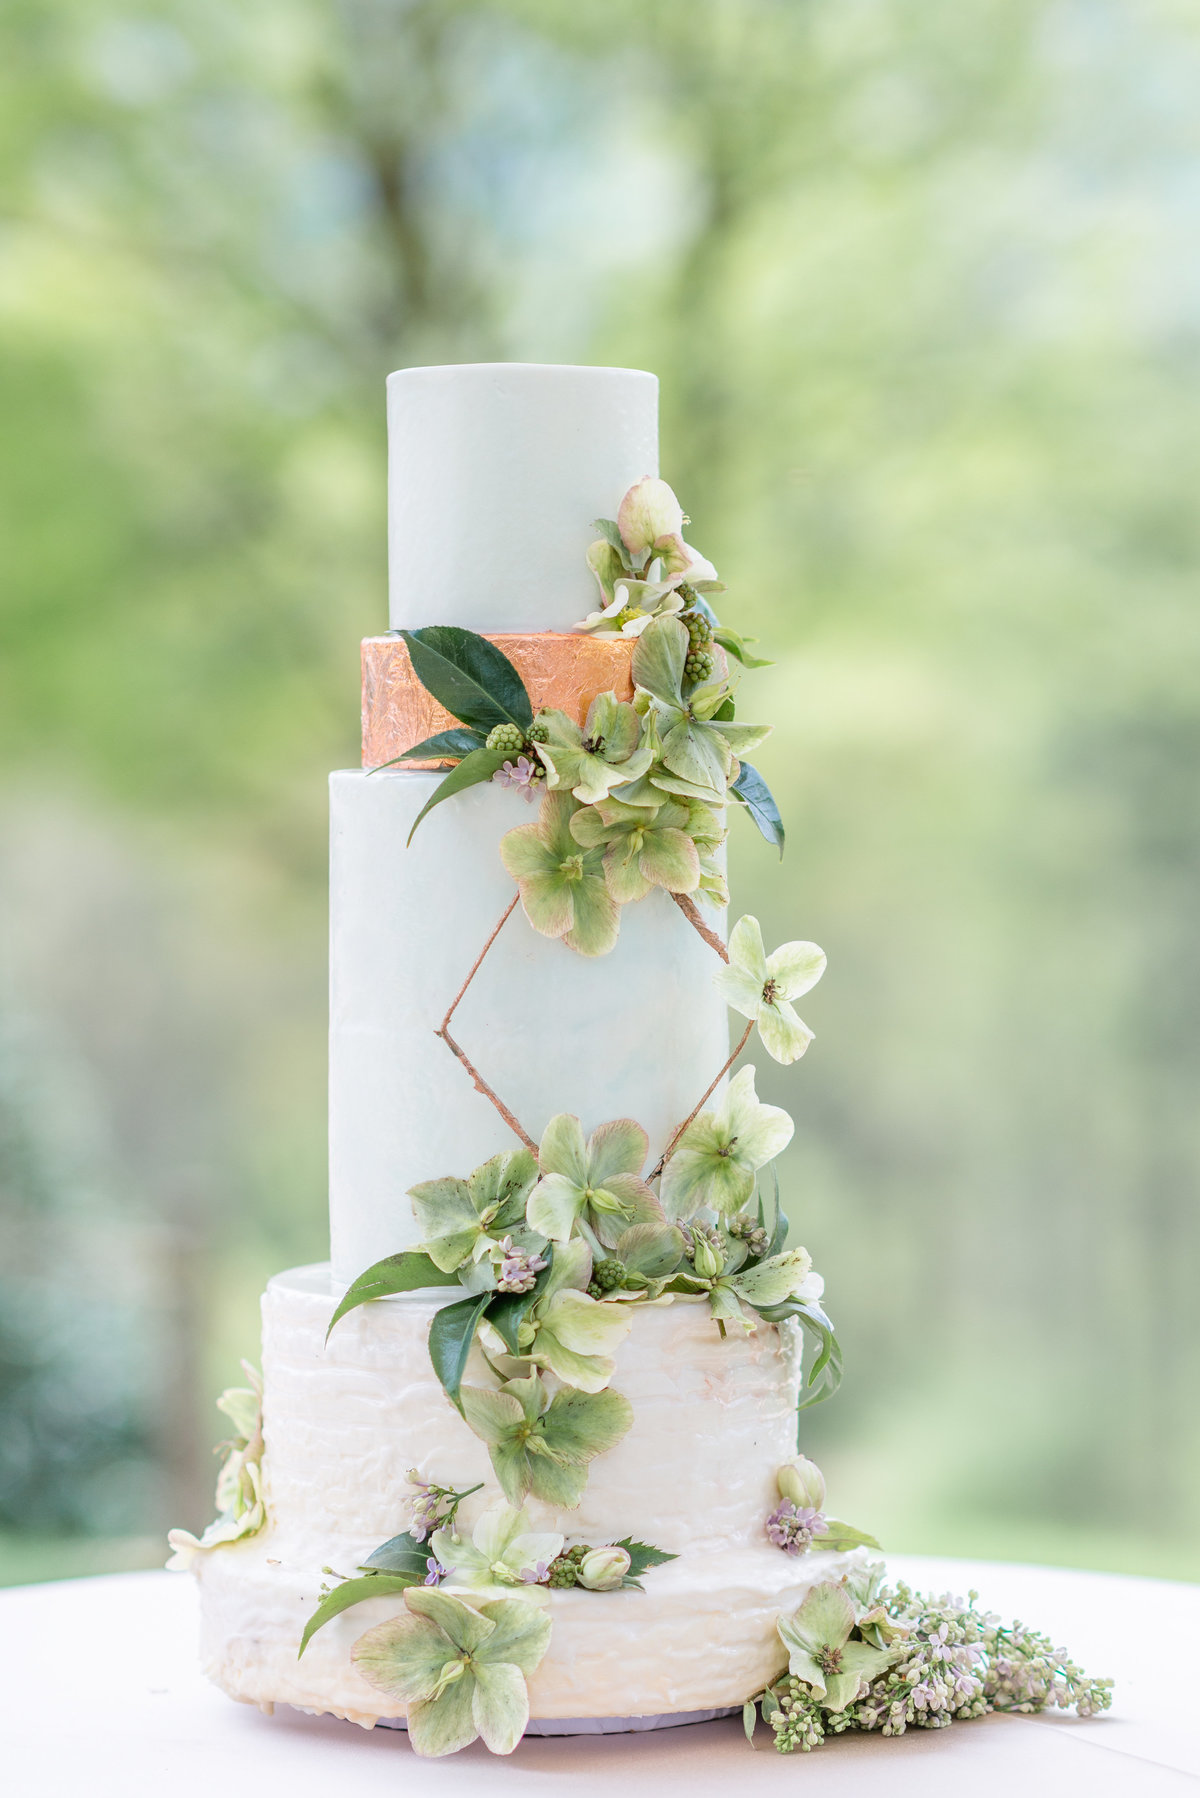 Wedding cake covered in greenery and copper